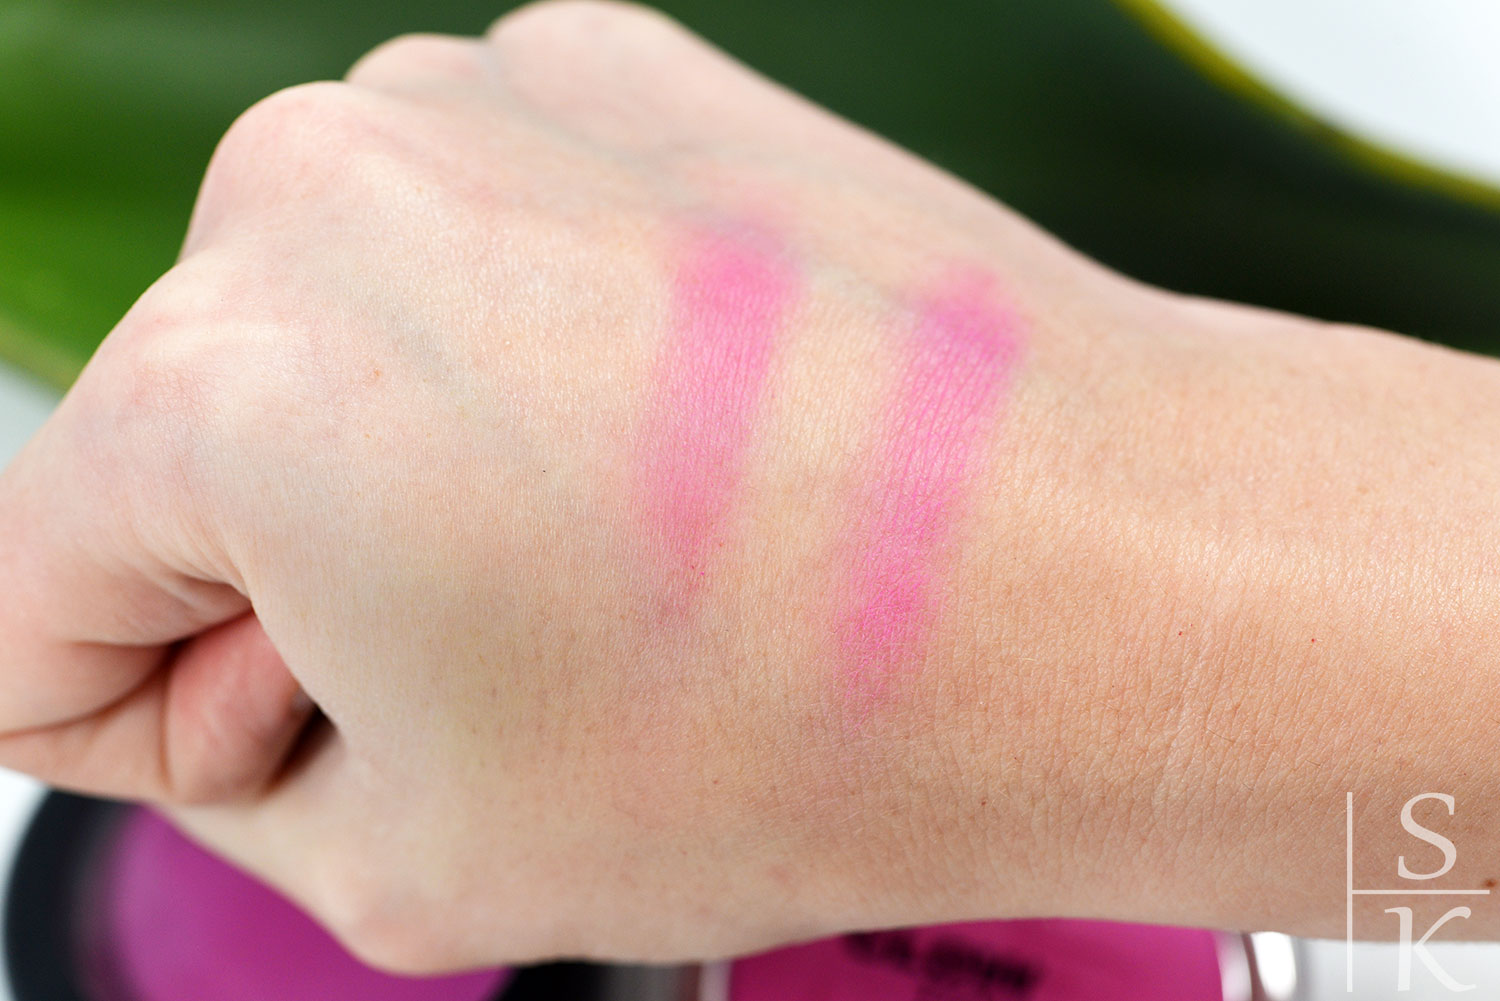 Dupe MAC – This Could Be Fun vs. p2 - 060 Touch Of Daisy